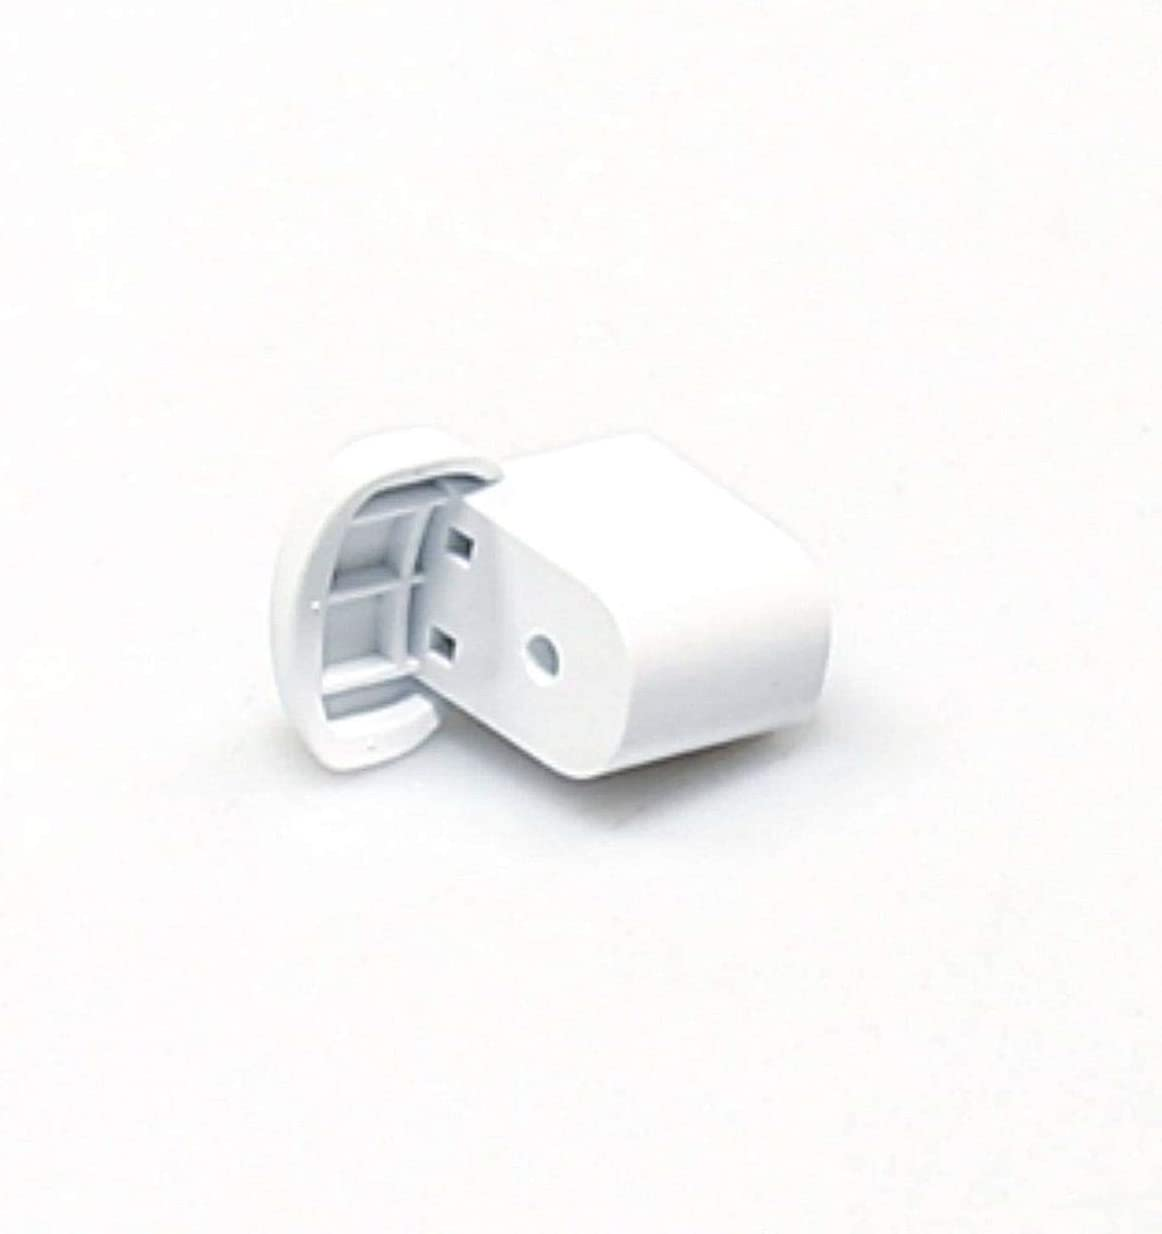 WB06X10943 for GE Microwave Handle Support White